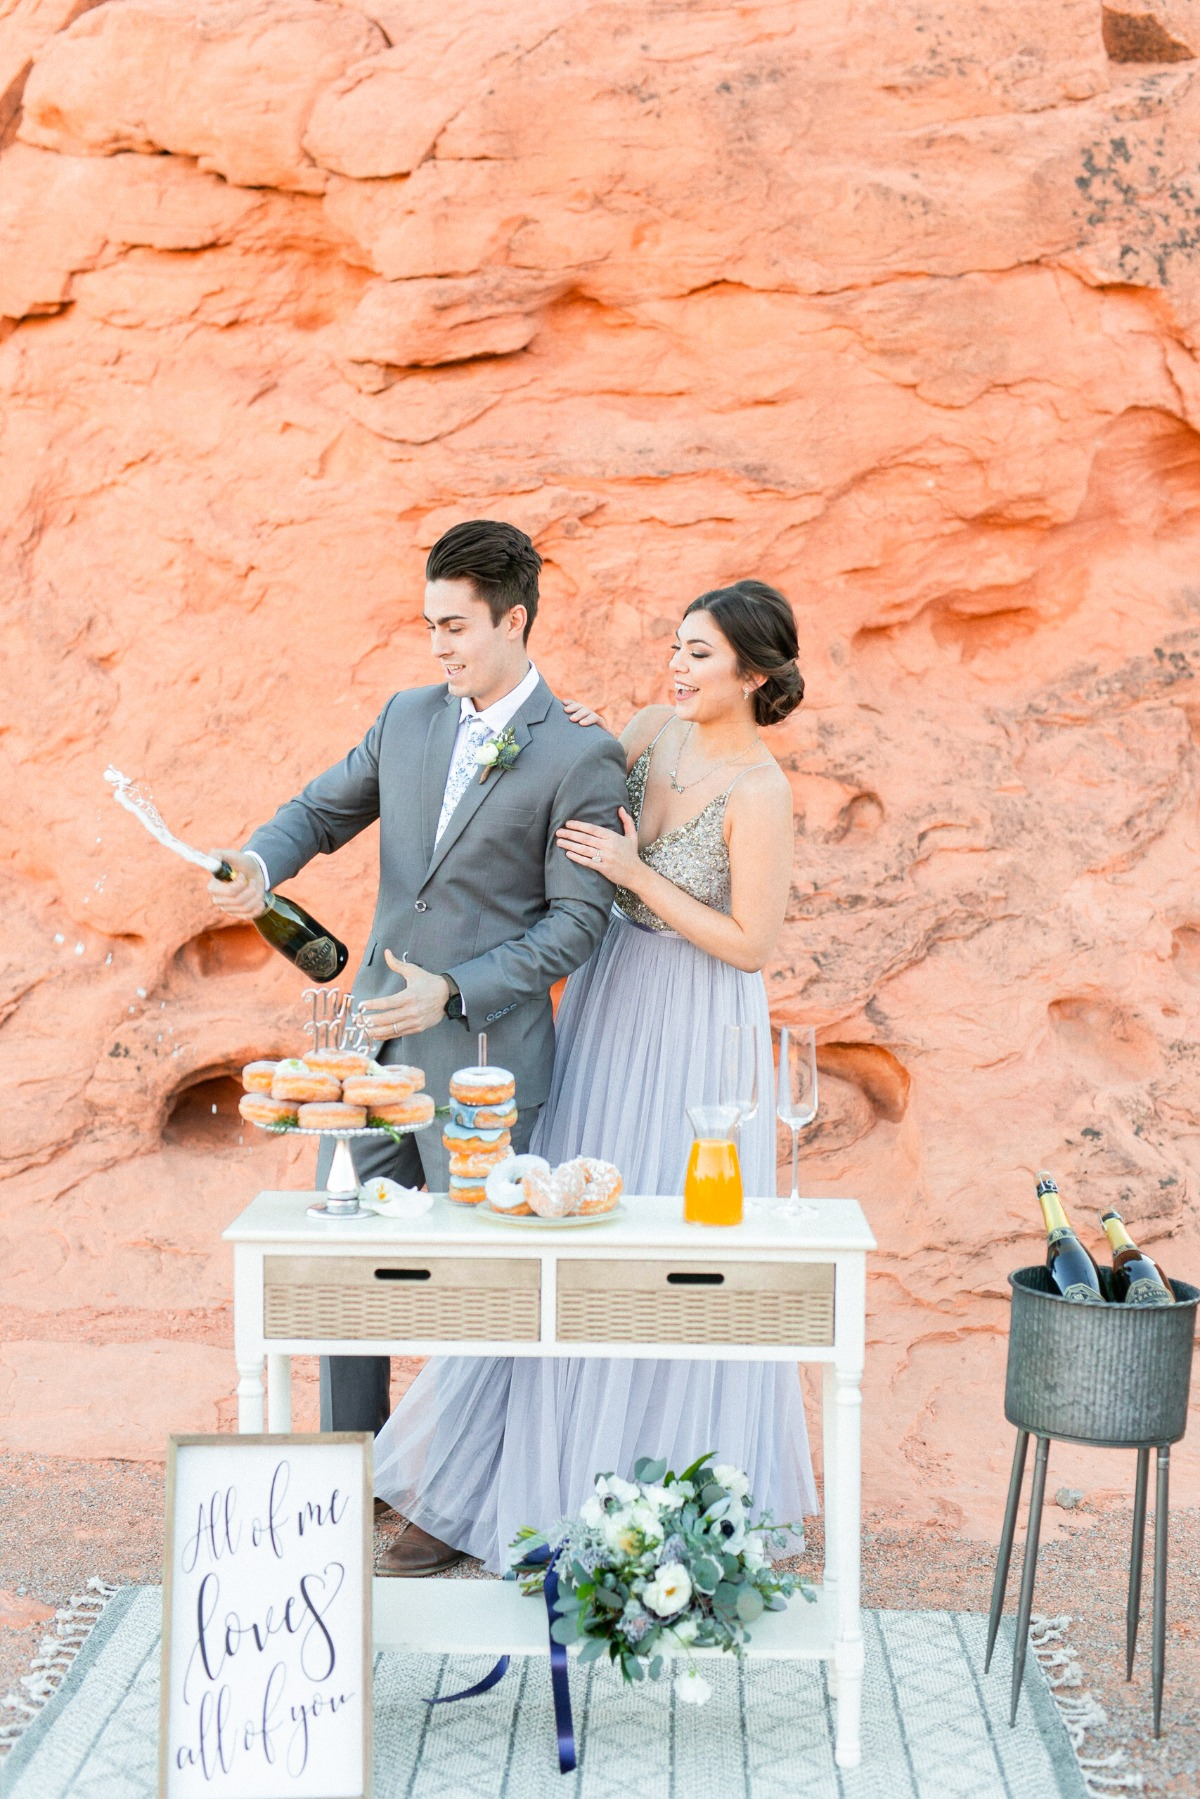 Mimosa bar at elopement